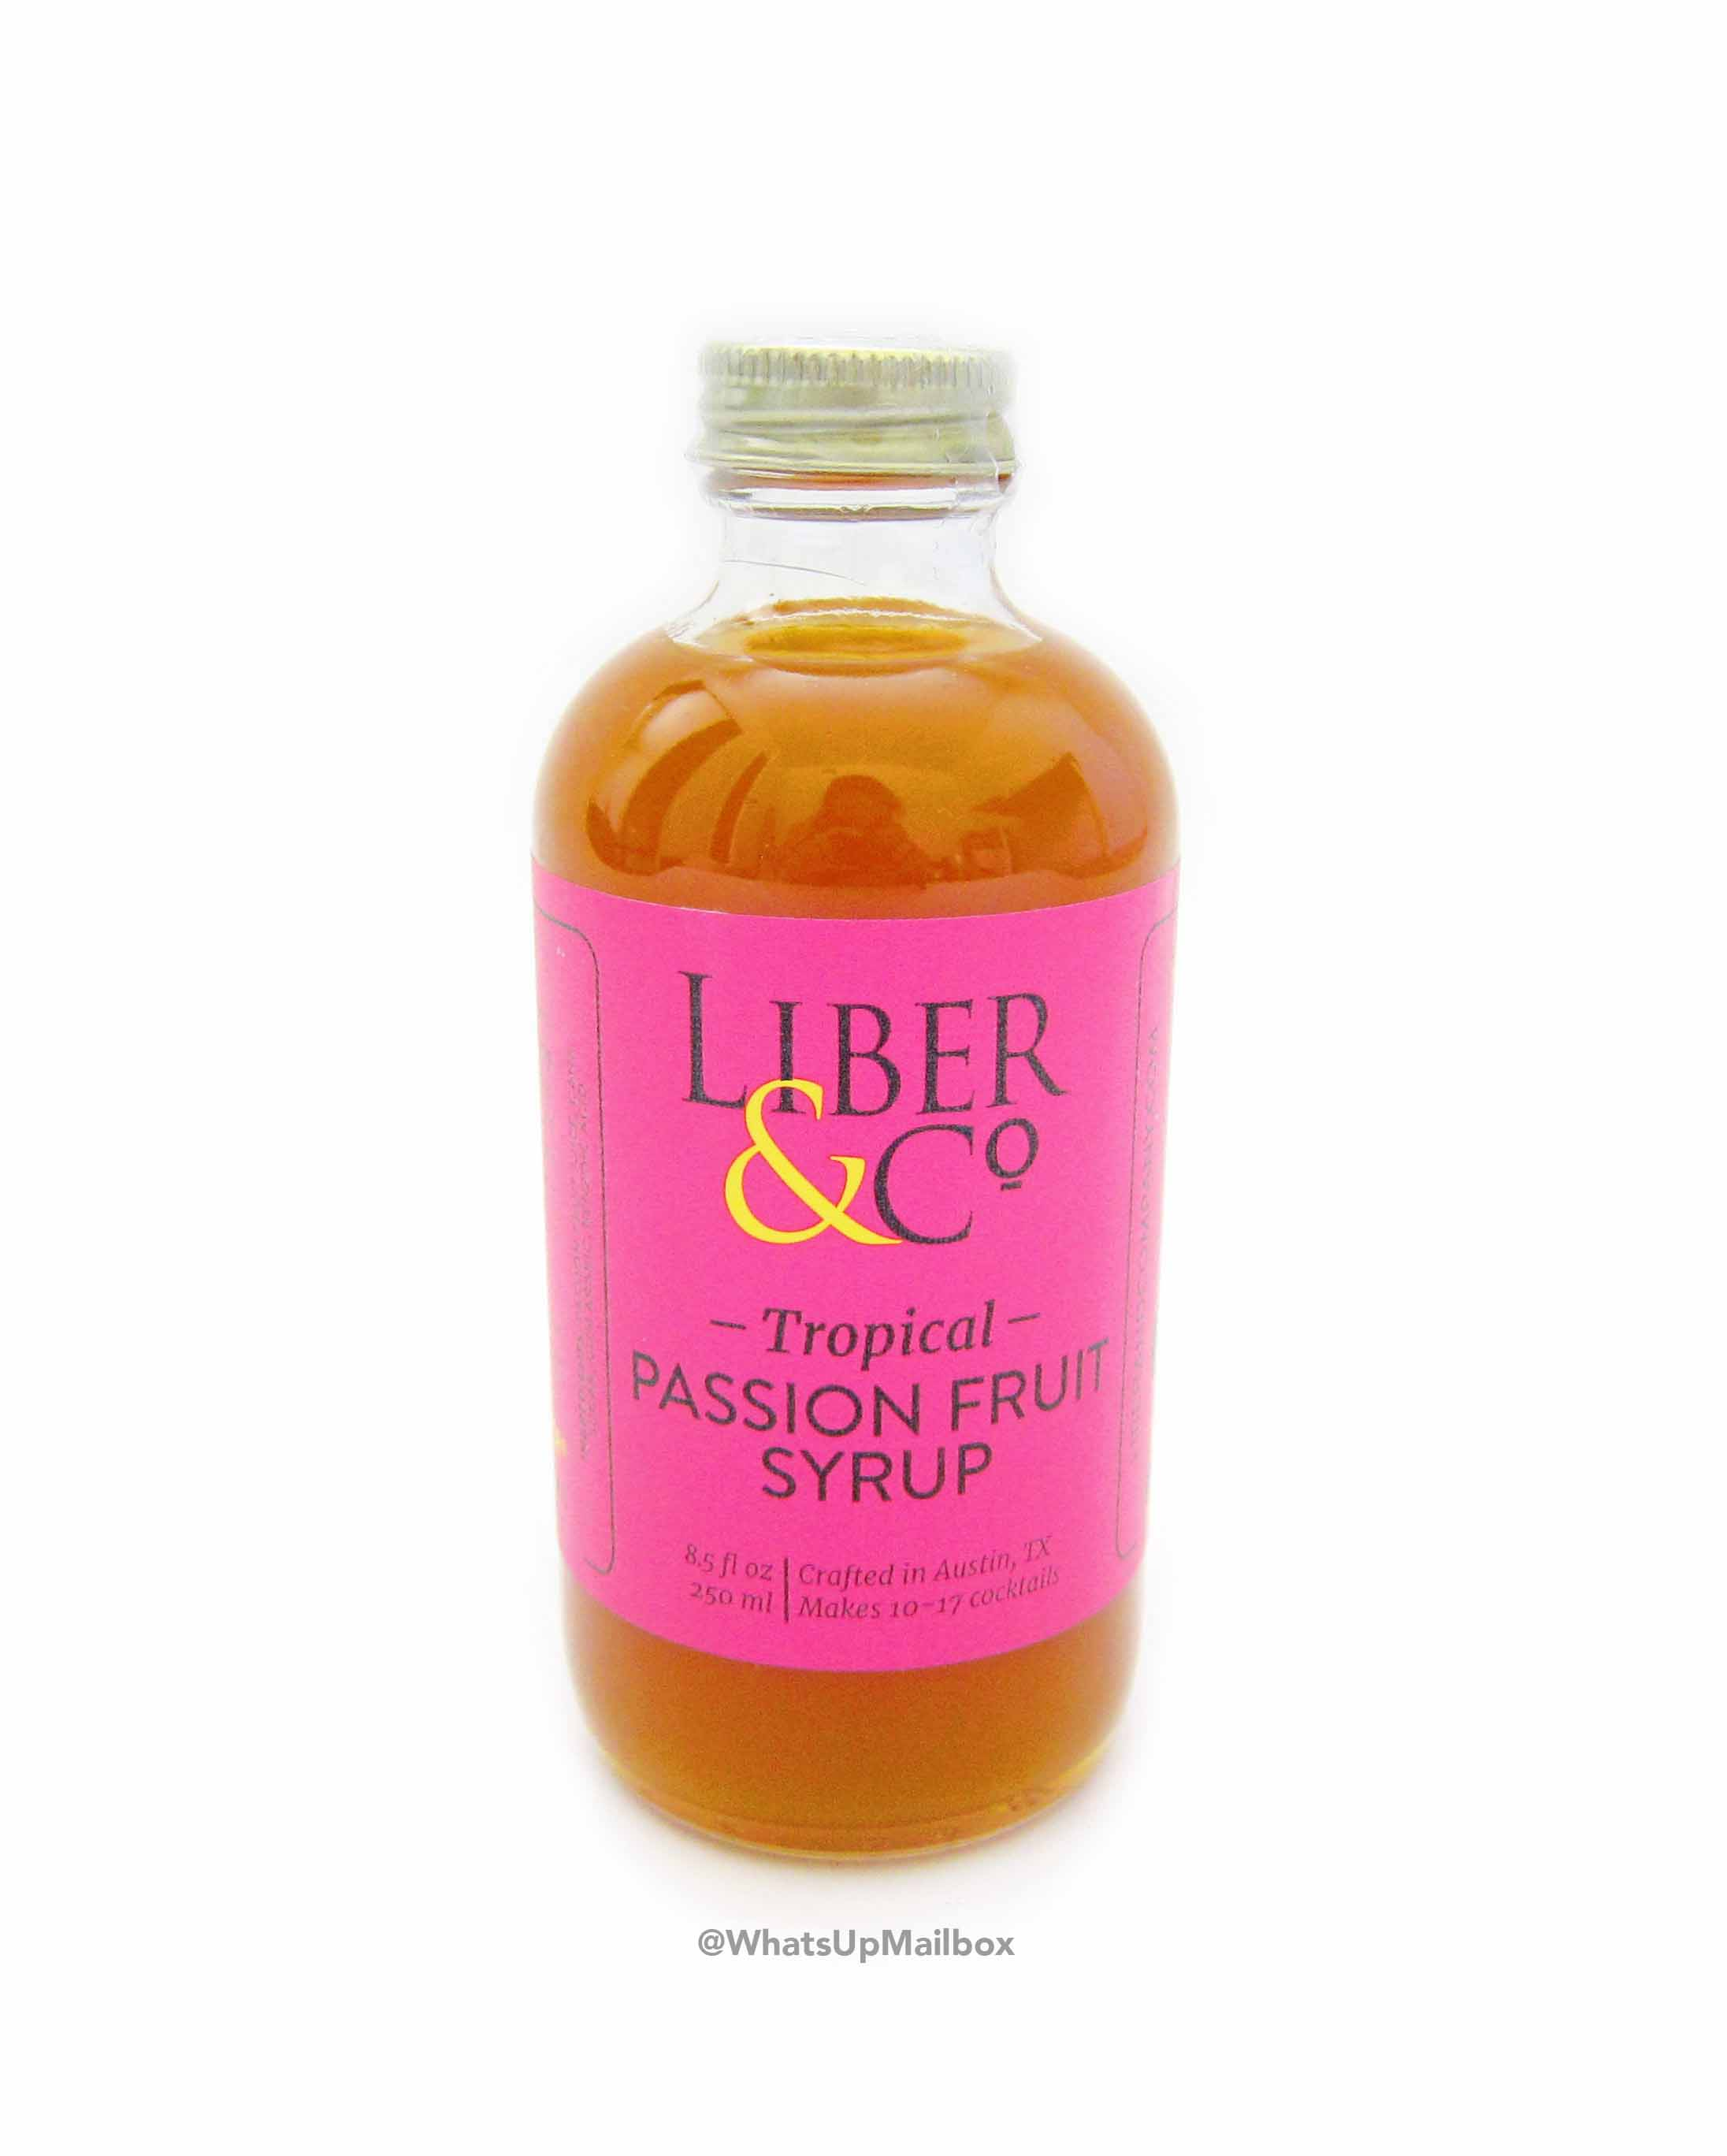 Liber & Co. Tropical Passion Fruit Syrup